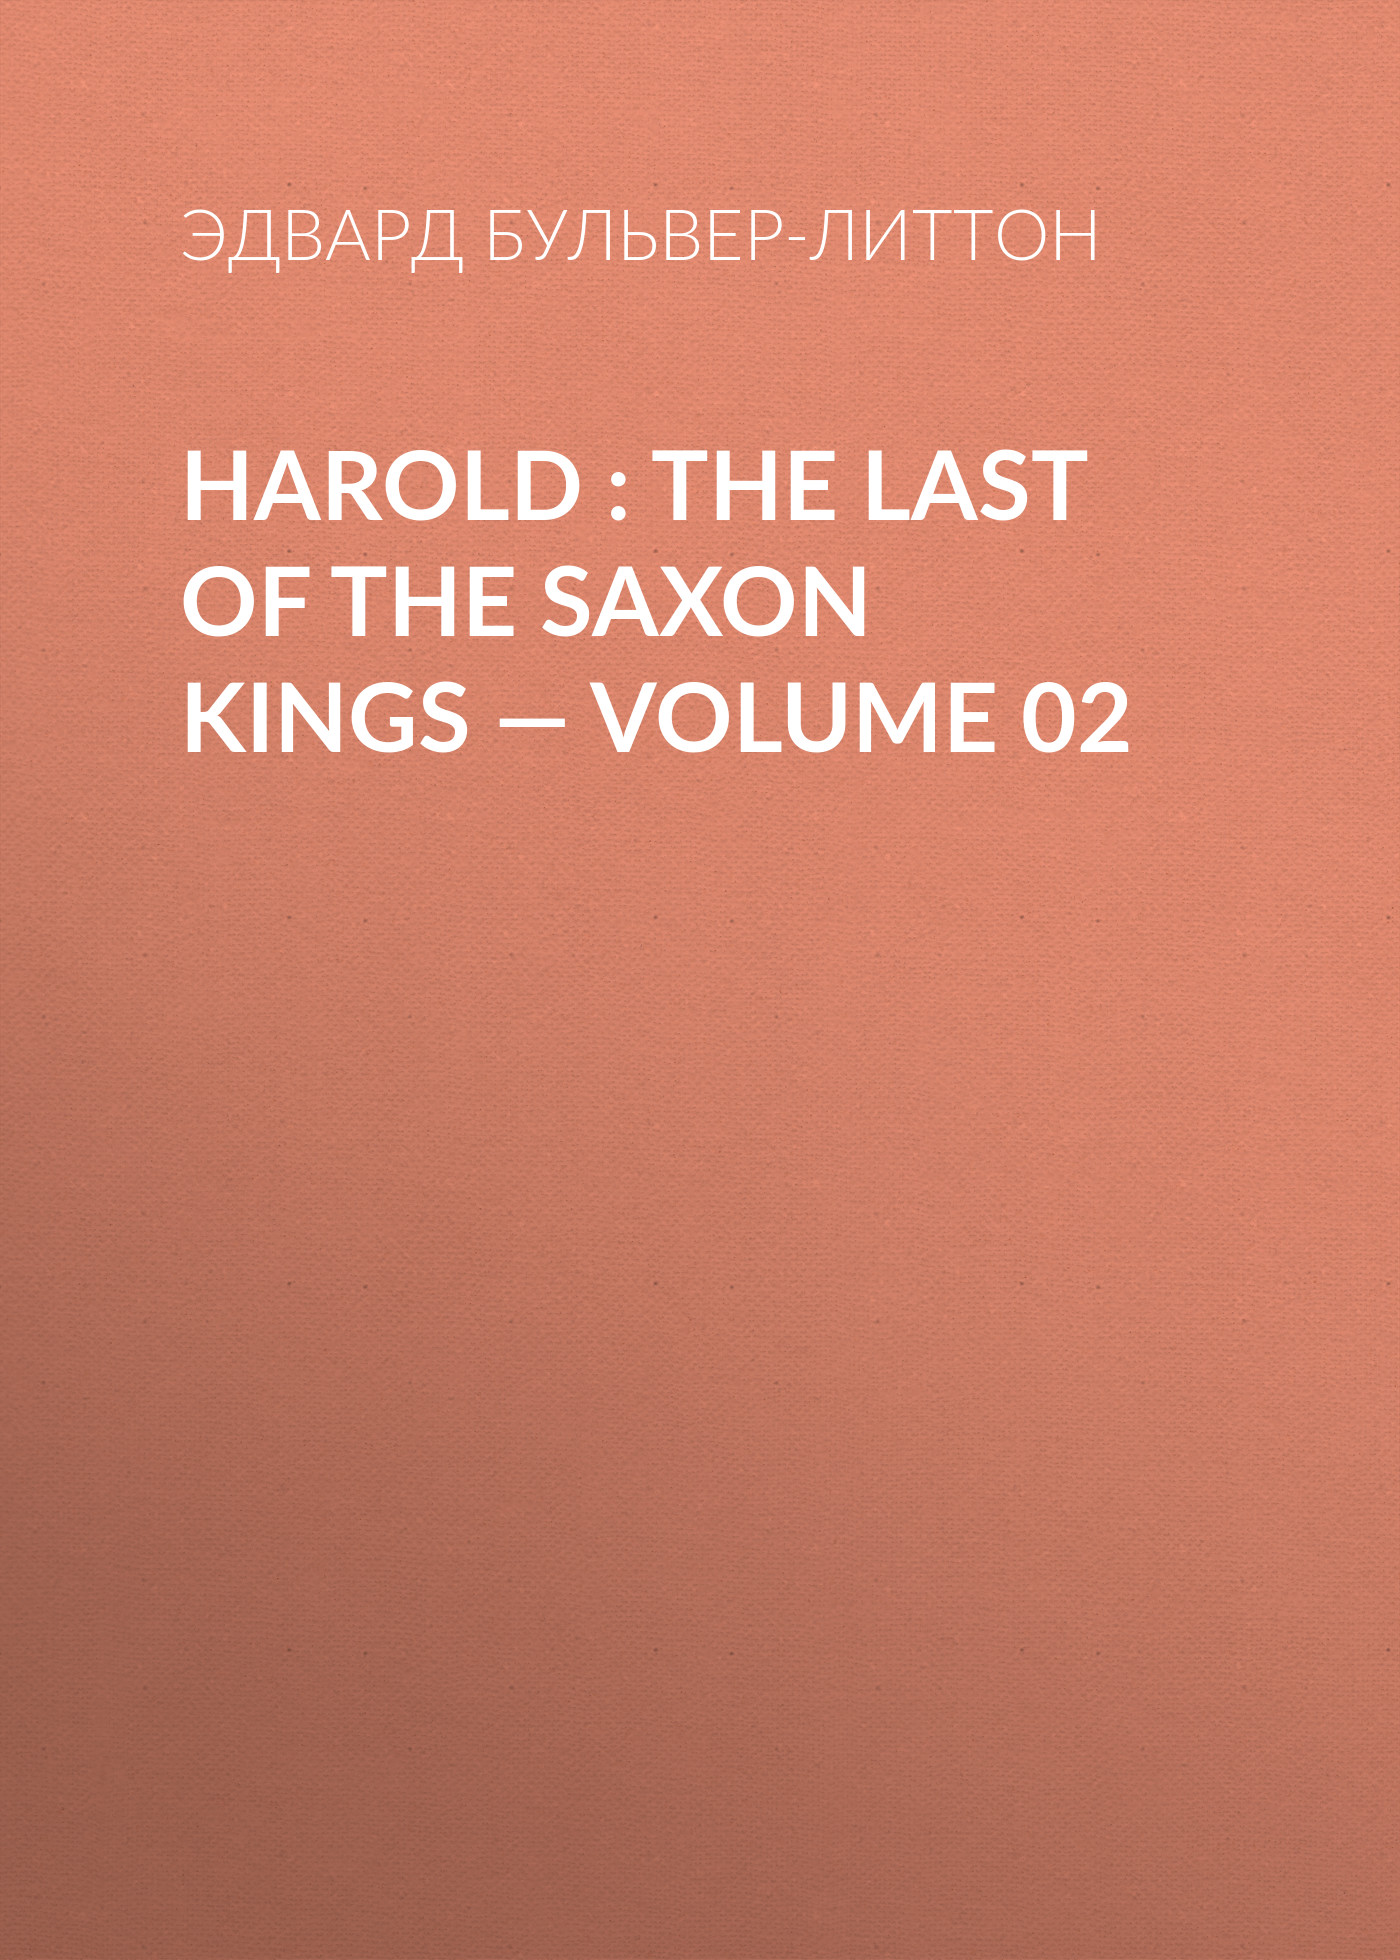 Эдвард Бульвер-Литтон Harold : the Last of the Saxon Kings — Volume 02 эдвард бульвер литтон harold the last of the saxon kings volume 10